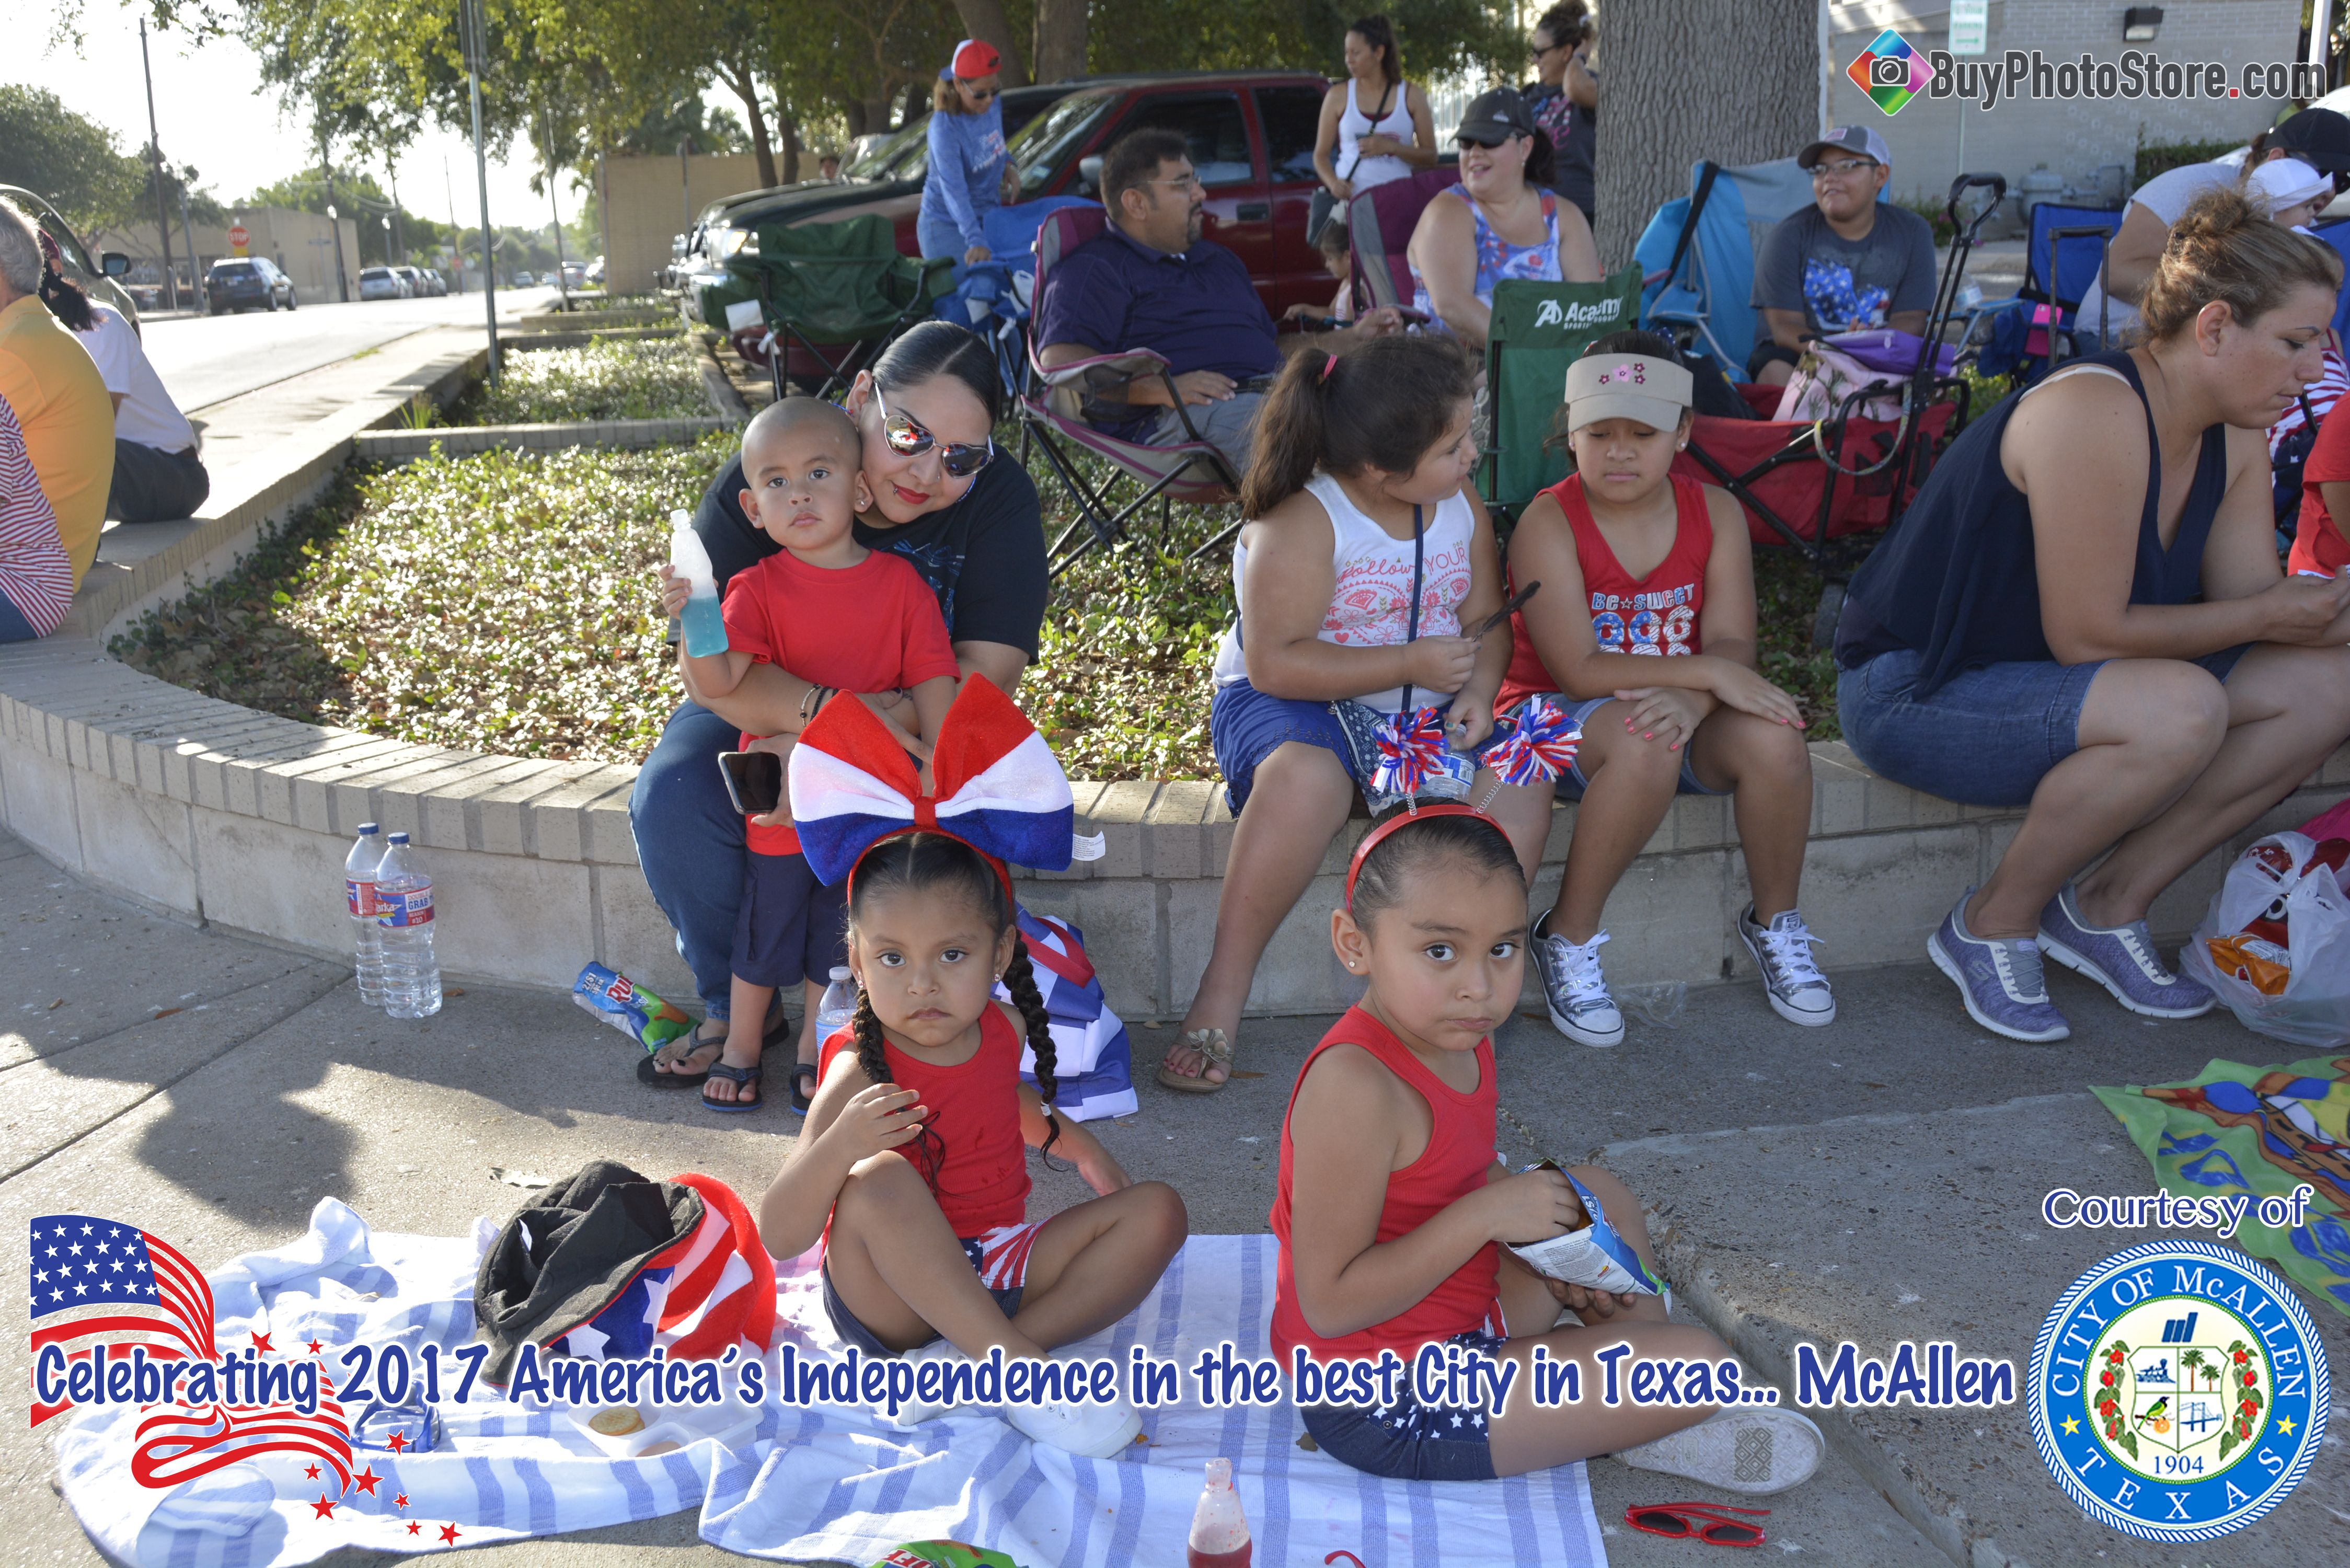 McAllen 4th of July Parade 2017 – Part I